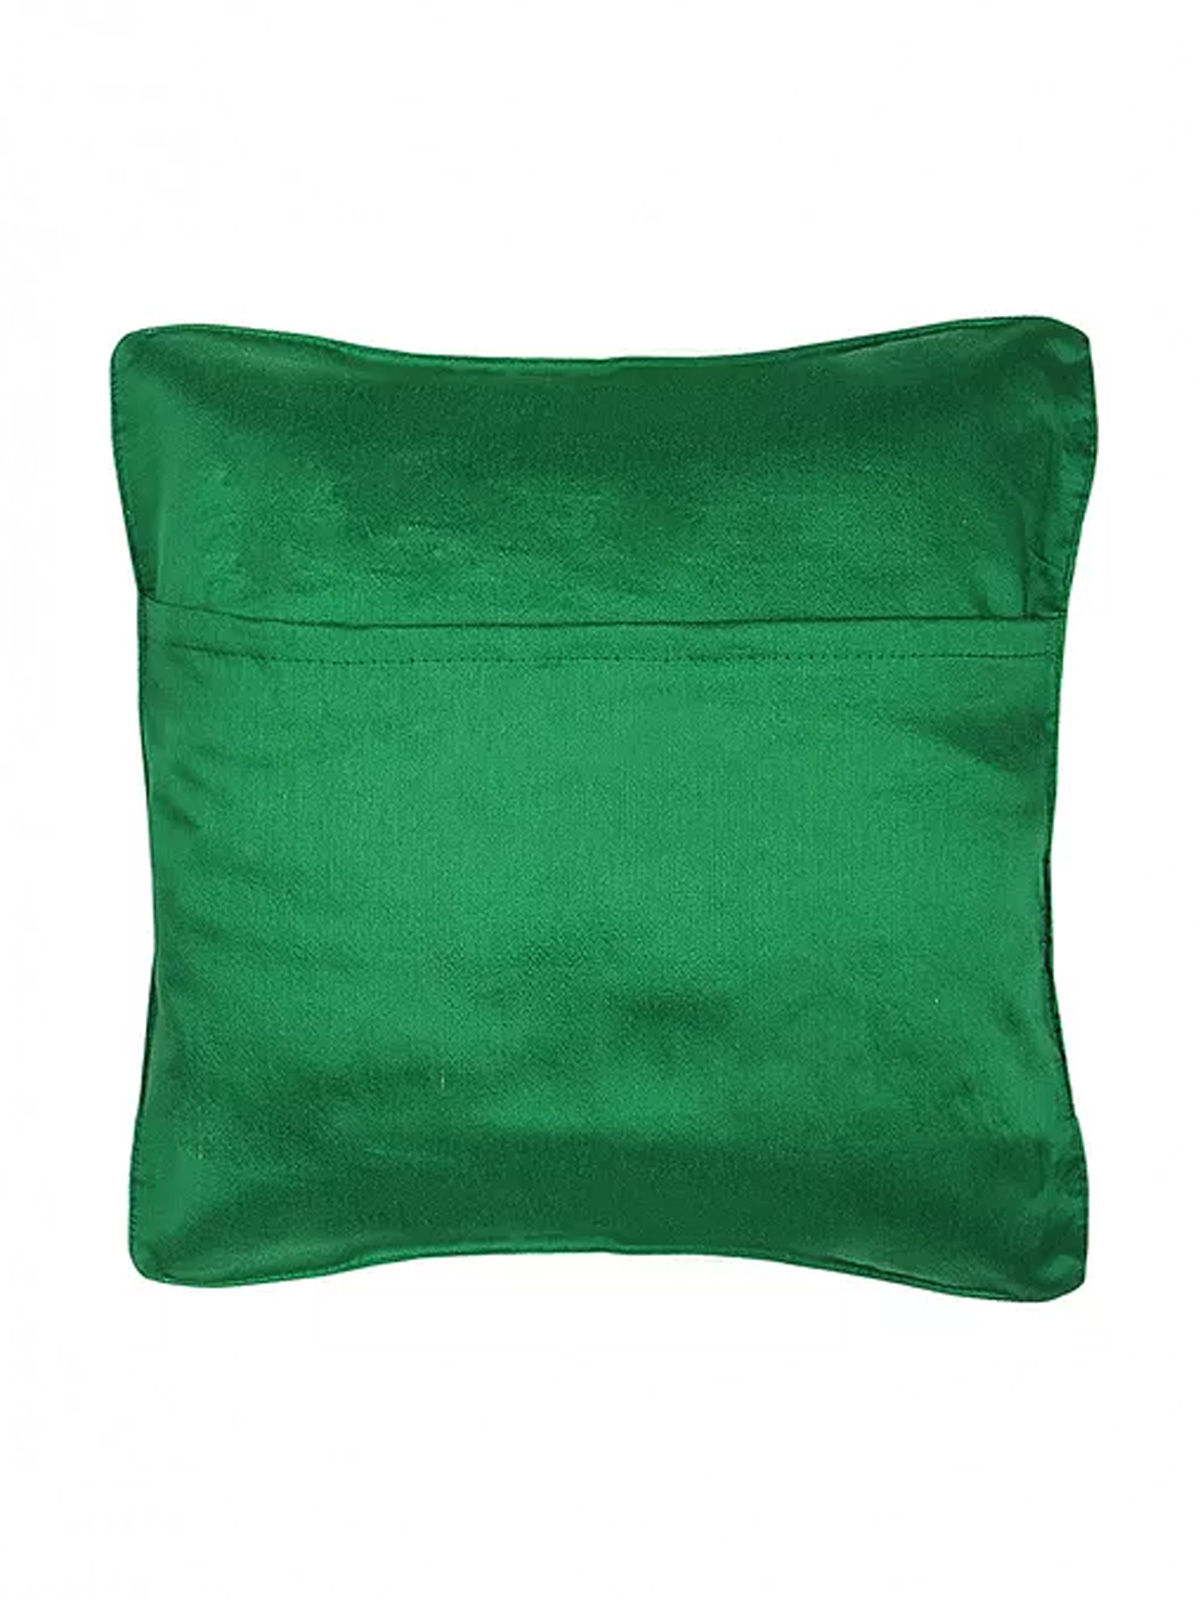 Green-White Embroidered Silk Cushion Cover with Marigold Motif